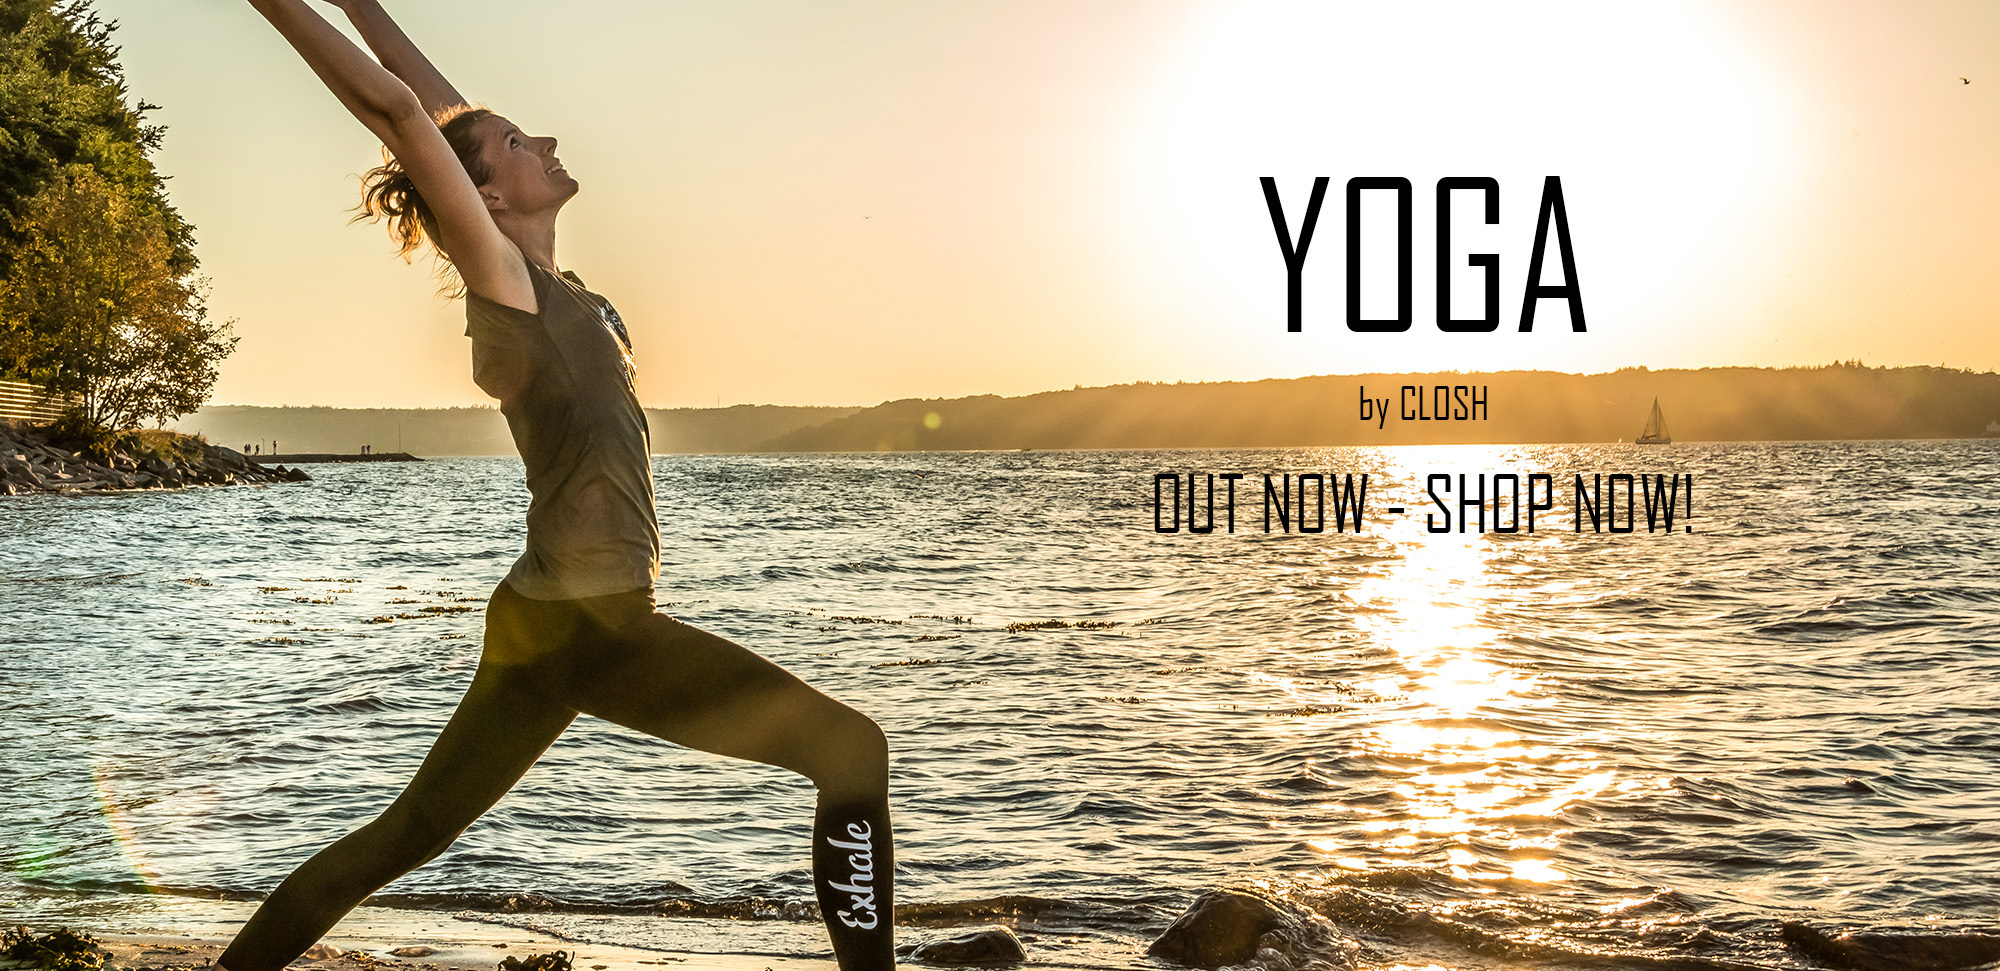 YOGA_by_closh_-_out_now